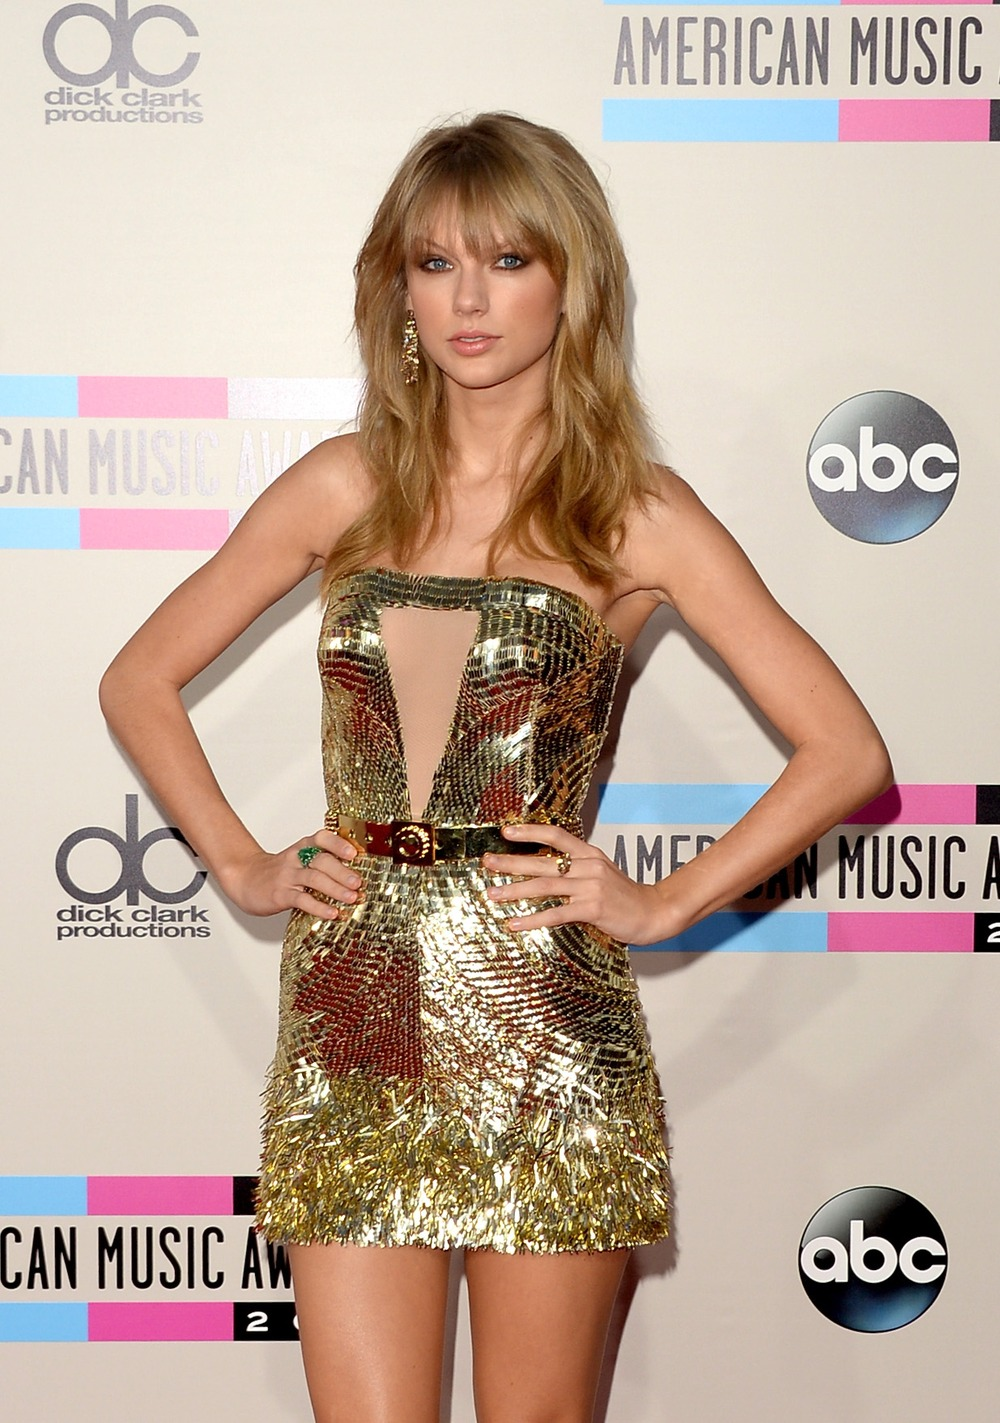 Why Is Taylor Swift Being Bashed in a Connecticut Newspaper?